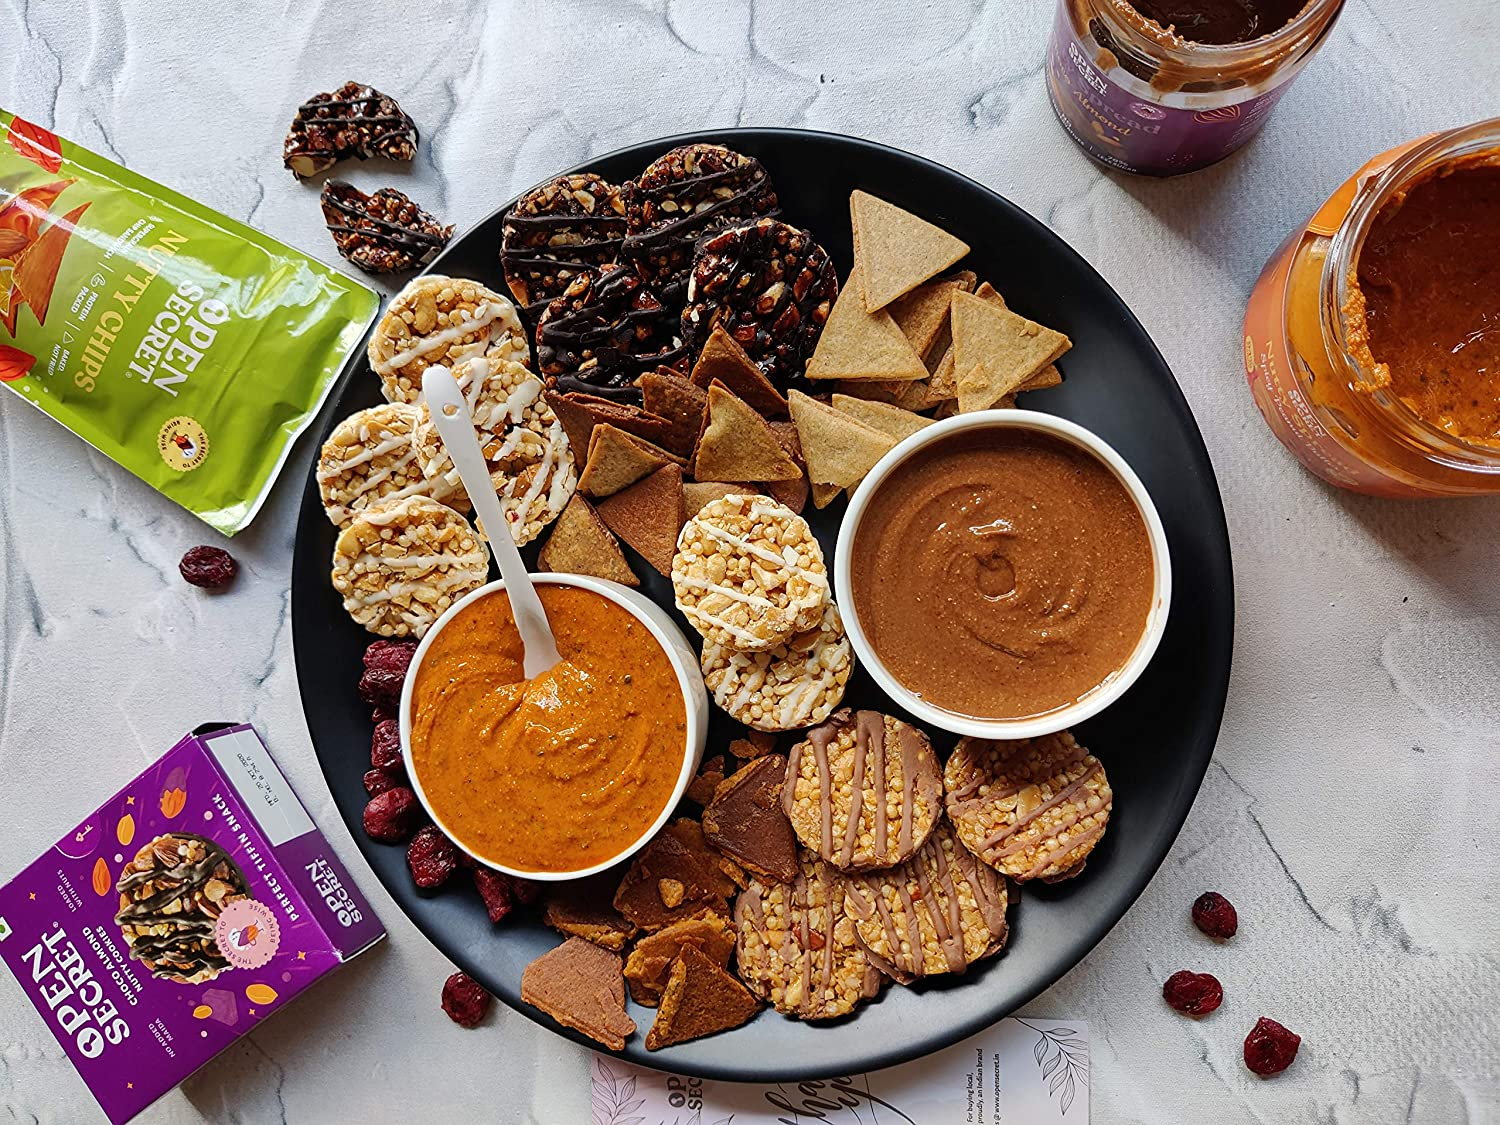 Cookies Chips spreads all in one plate